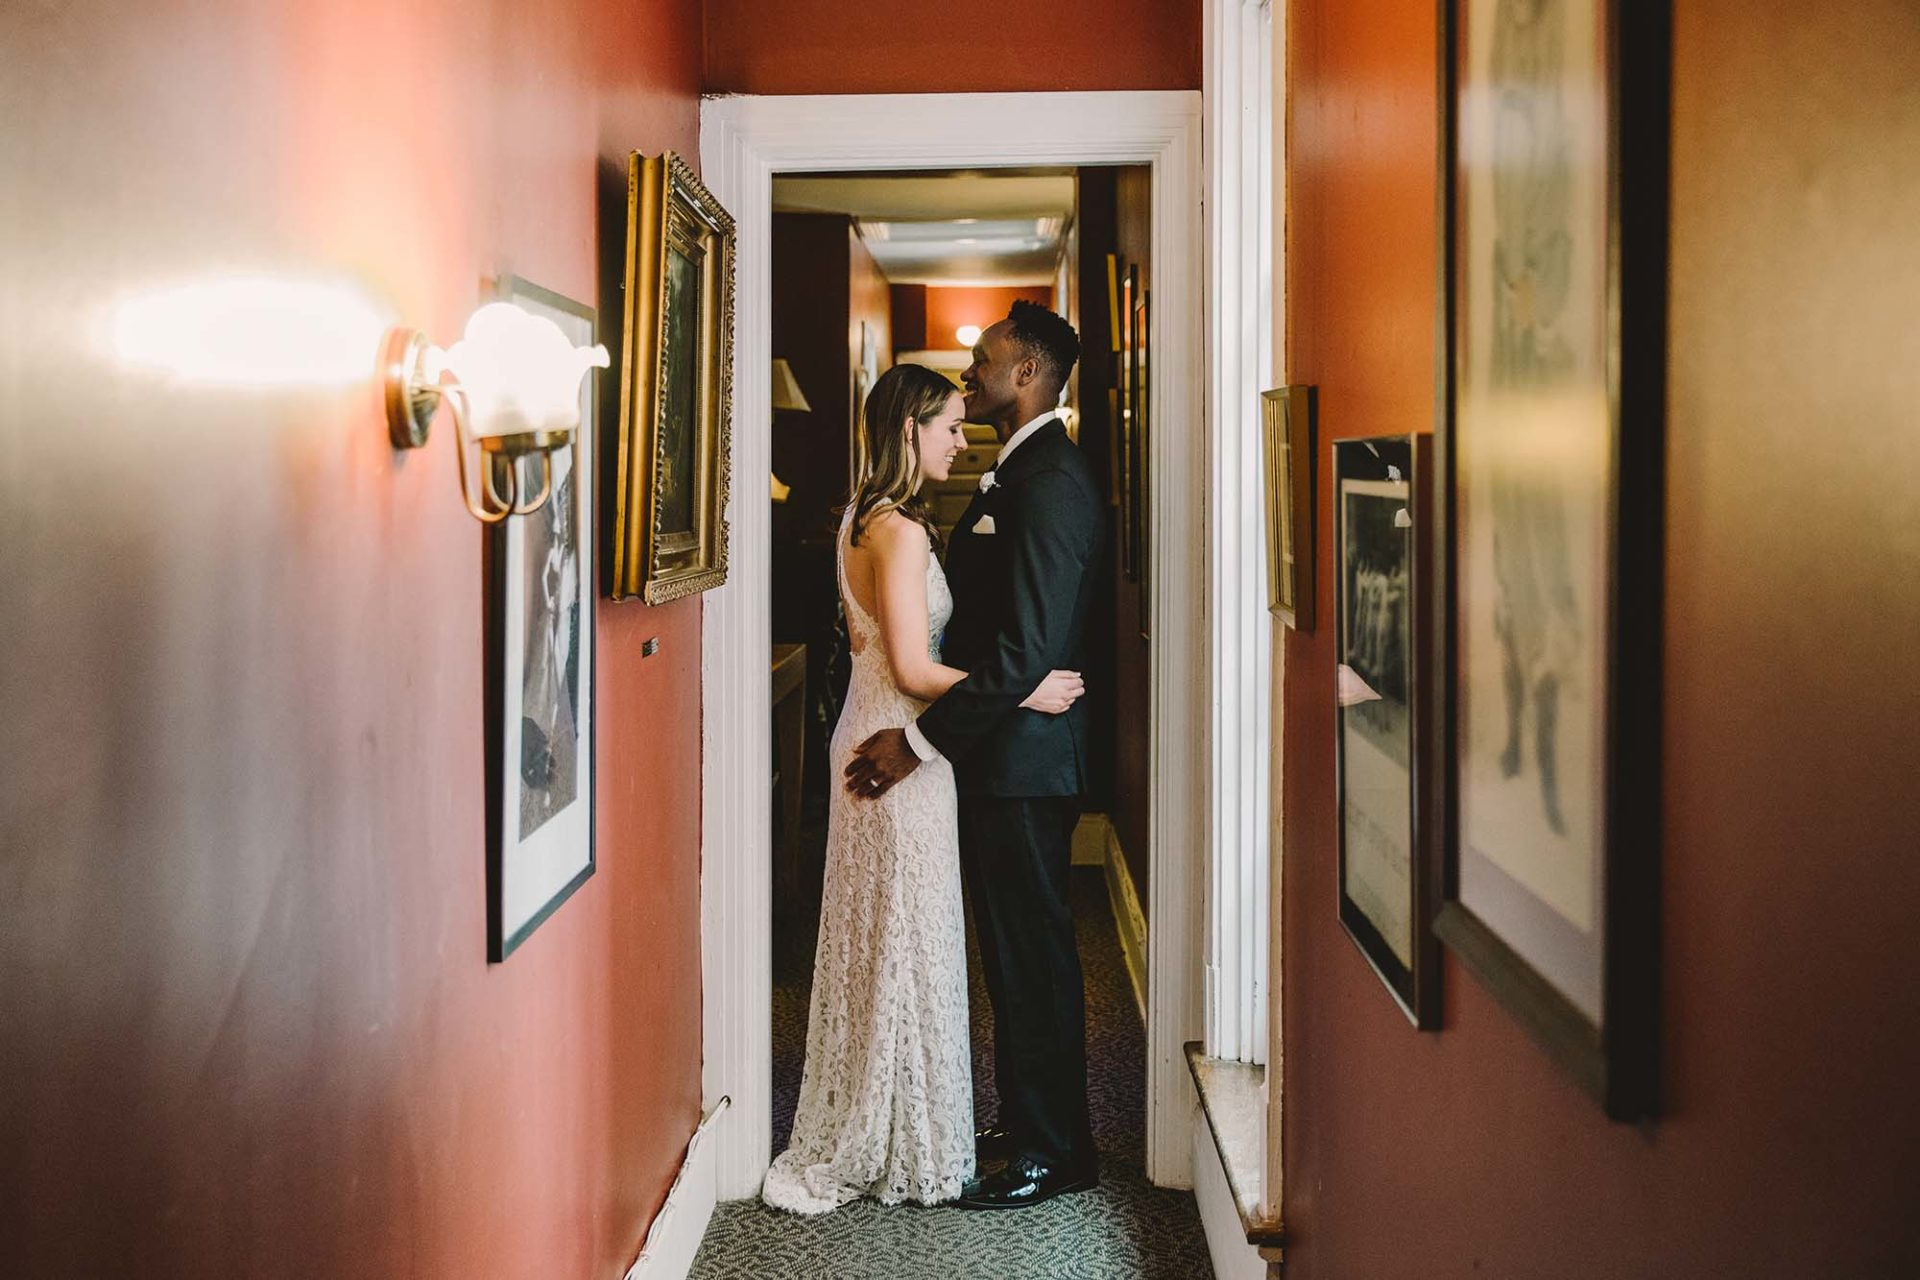 a couple stands in embrace, smiling, in a hallway. Rachel Couch for Pop! Wed Co.